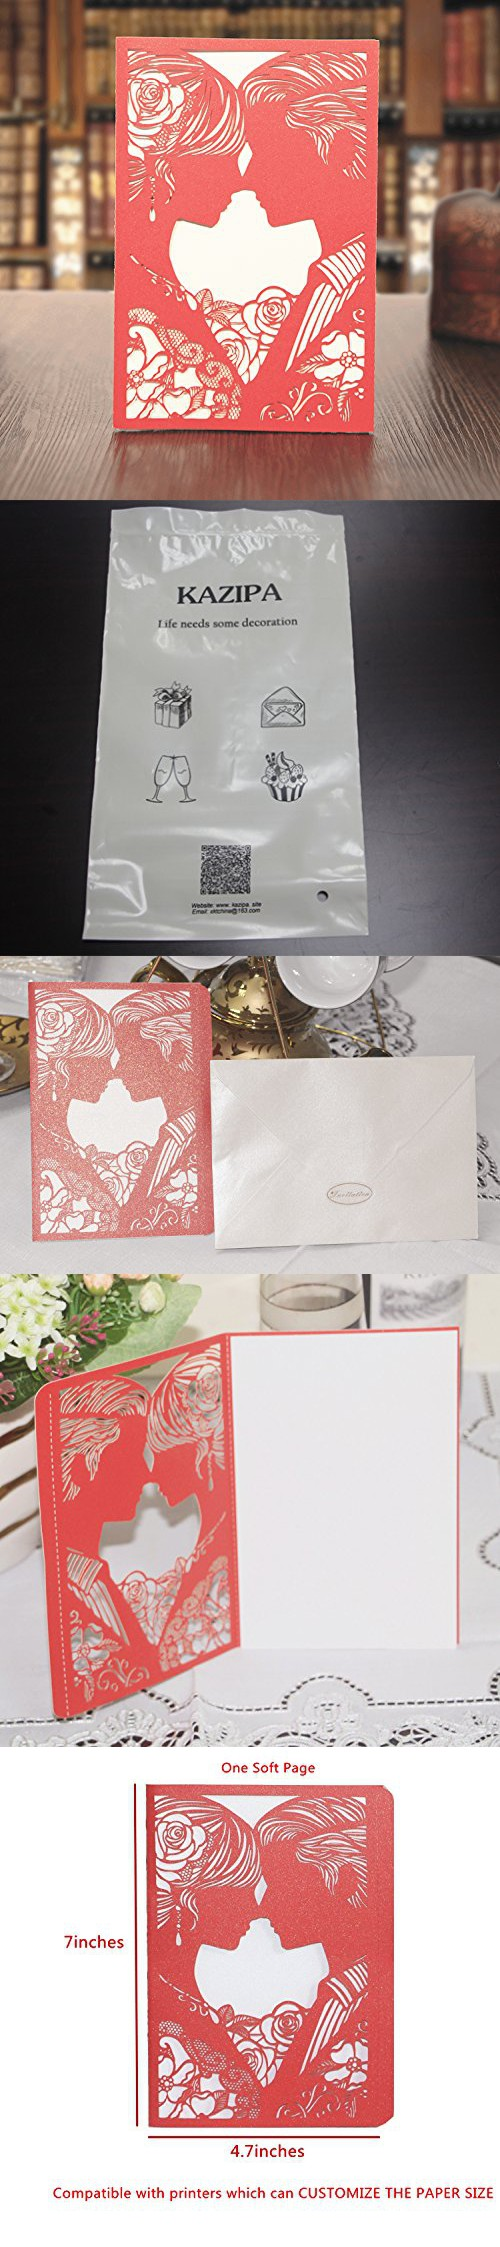 Kazipa 25 Pack Set Laser Cut Invitation Cards Lace Invitation Kit